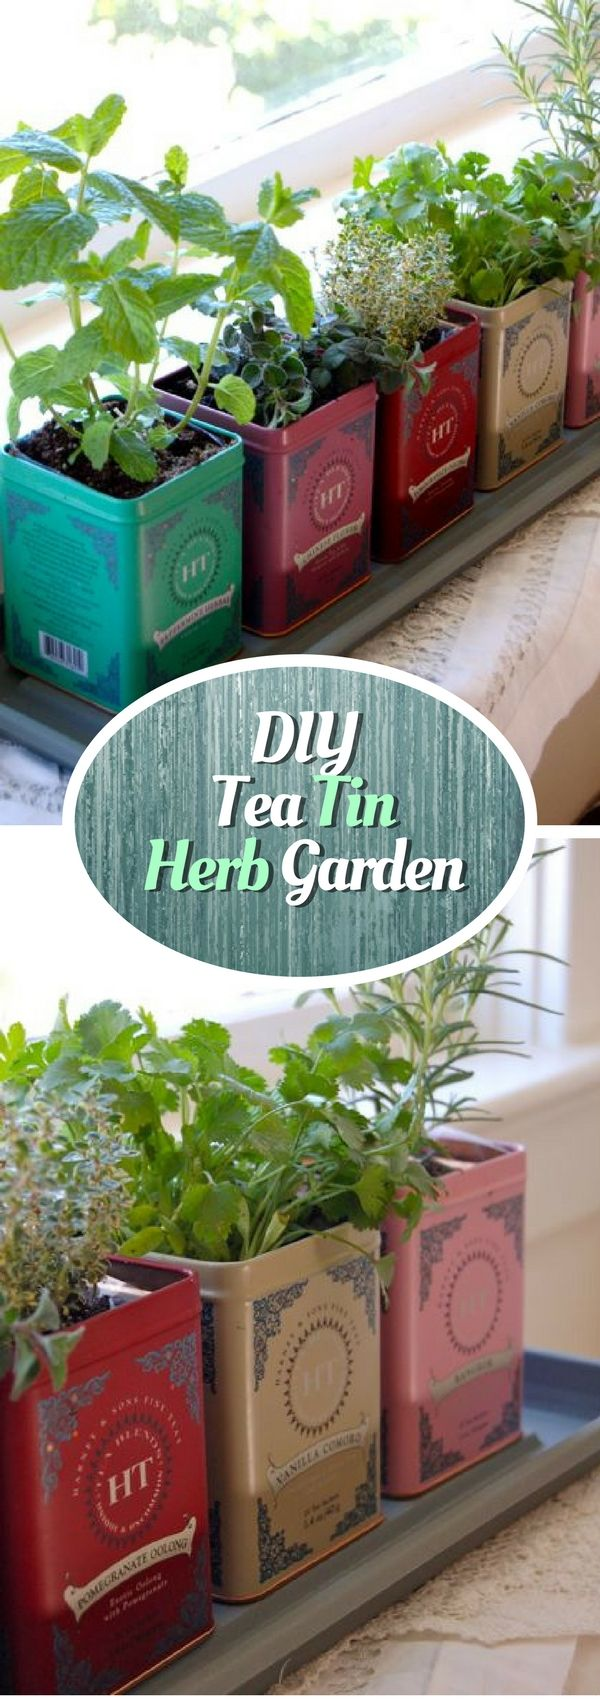 check out how to make a diy herb garden form tea tin cans istandarddesign - How To Start An Indoor Herb Garden